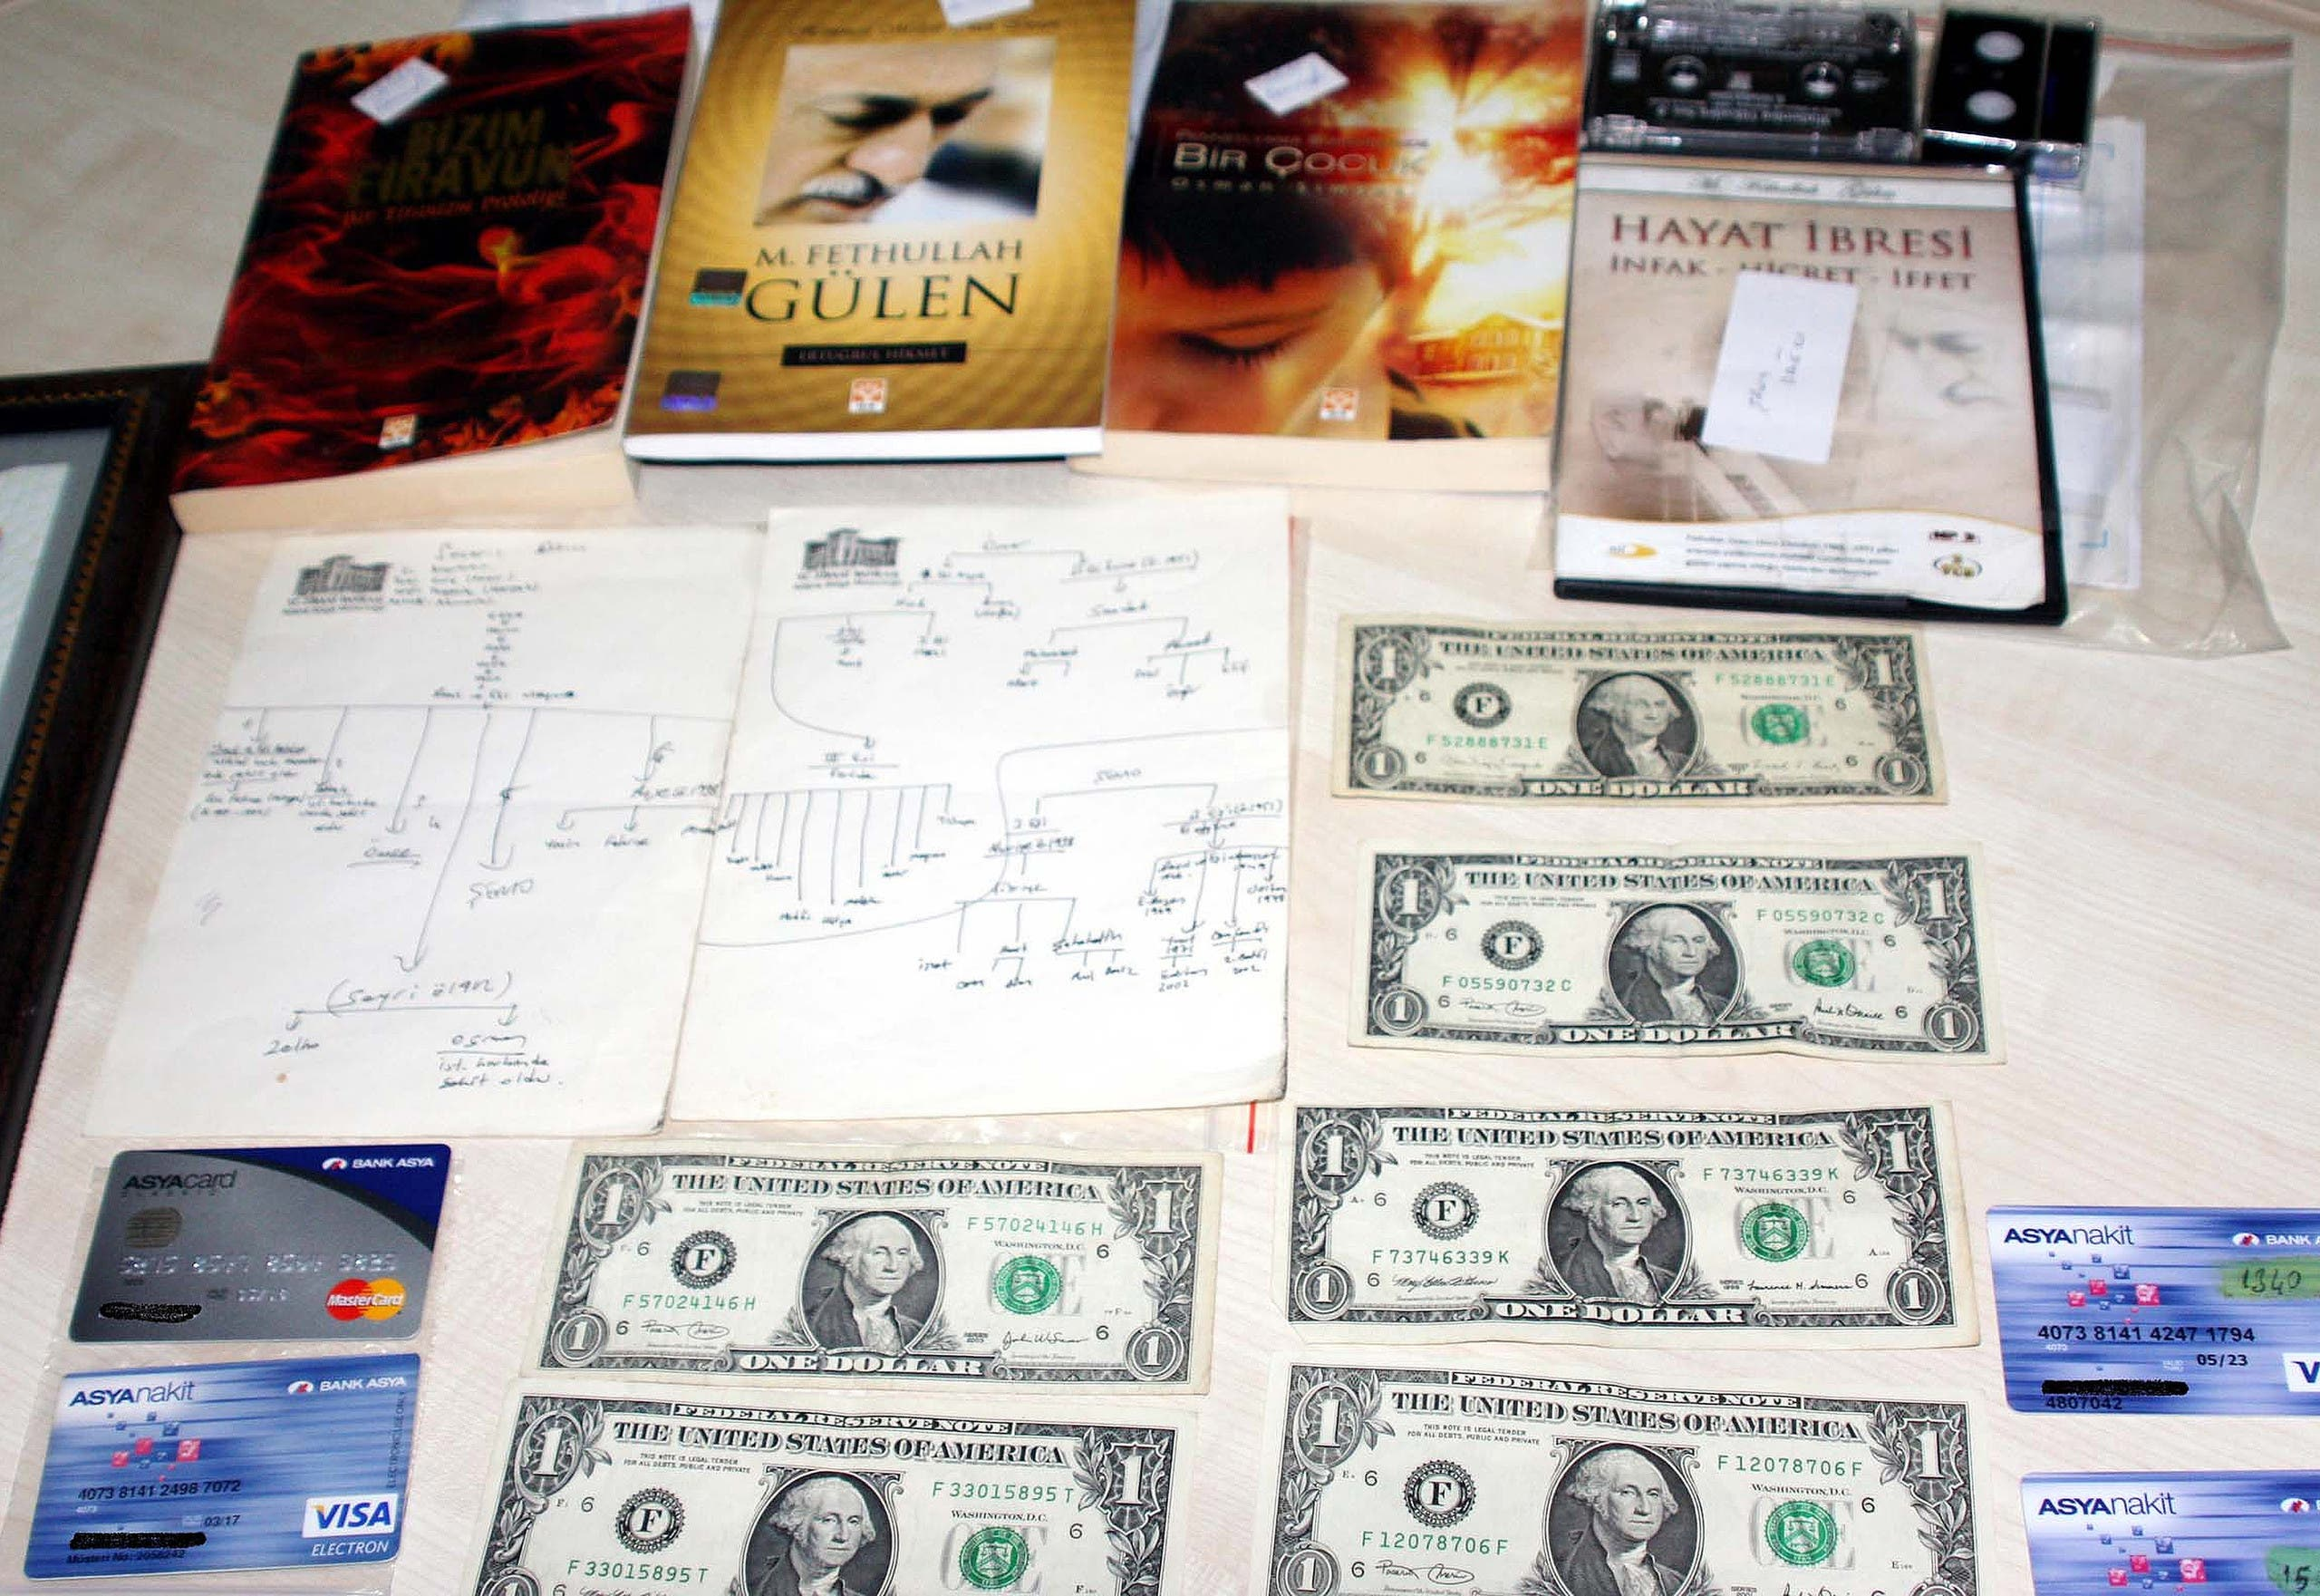 US dollars, Visas cards and books displayed after police raids on the home and the business of one suspected follower of Muslim cleric Fethullah Gulen in Gaziantep, Turkey on Aug 3, 2016. (AP)